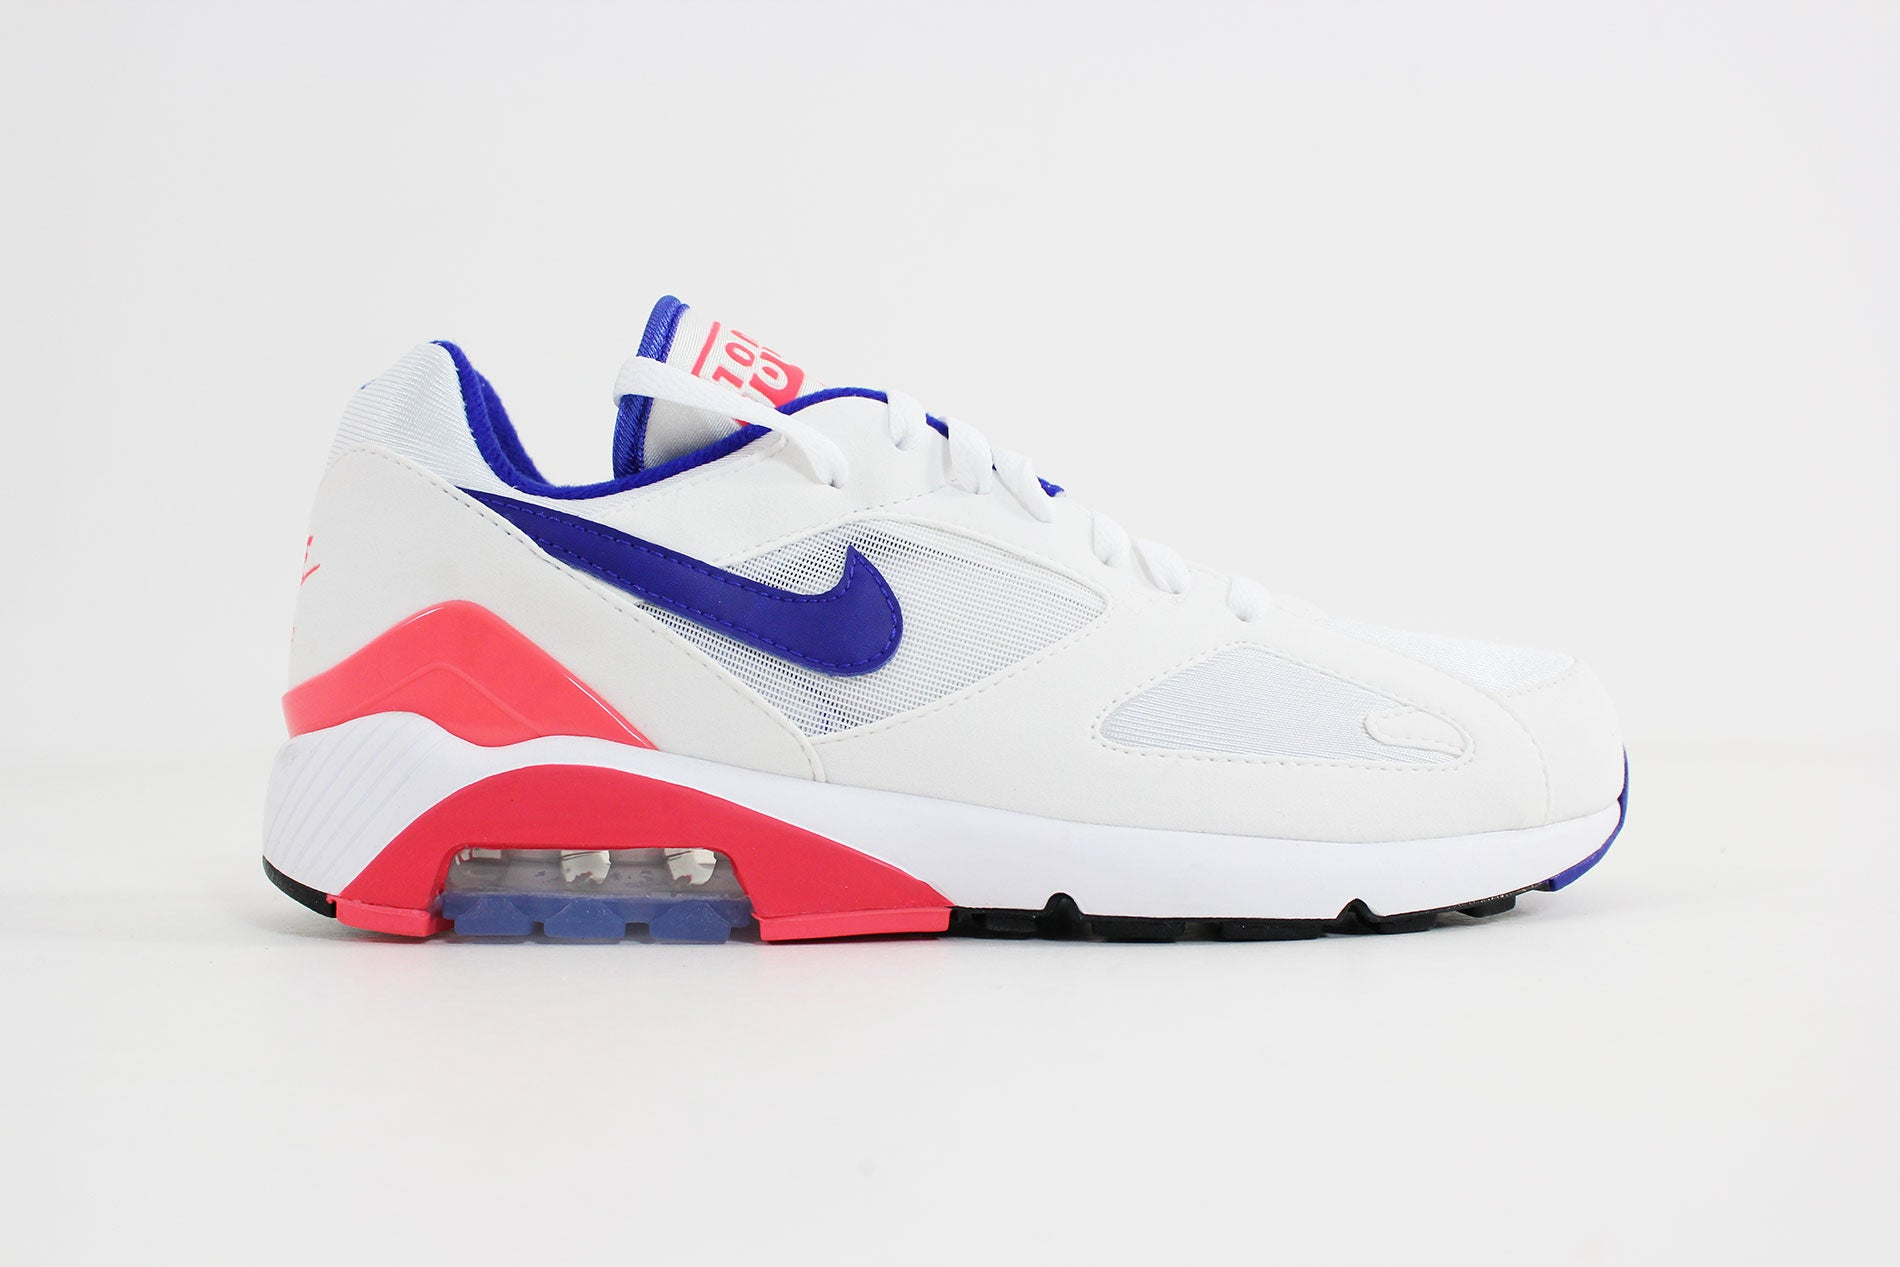 the latest 495c2 0a6be Nike - Air Max 180 (White Ultramarine - Solar Red) 615287-100